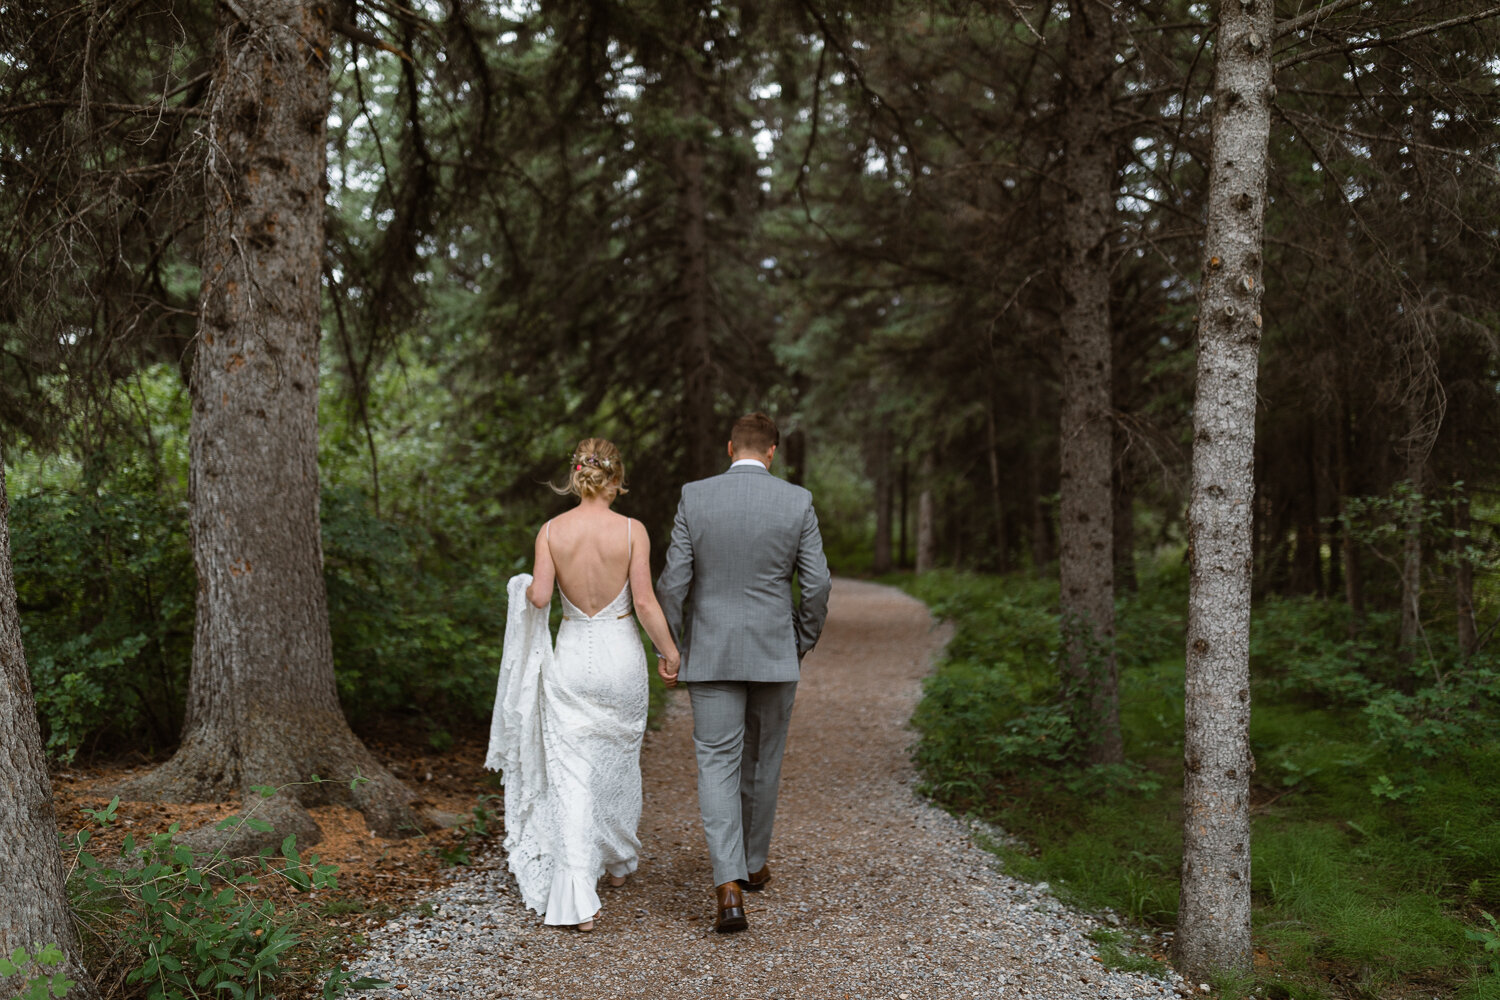 43-Canmore-Alberta-Real-Wedding-Best-Wedding-Photographers-55.JPG